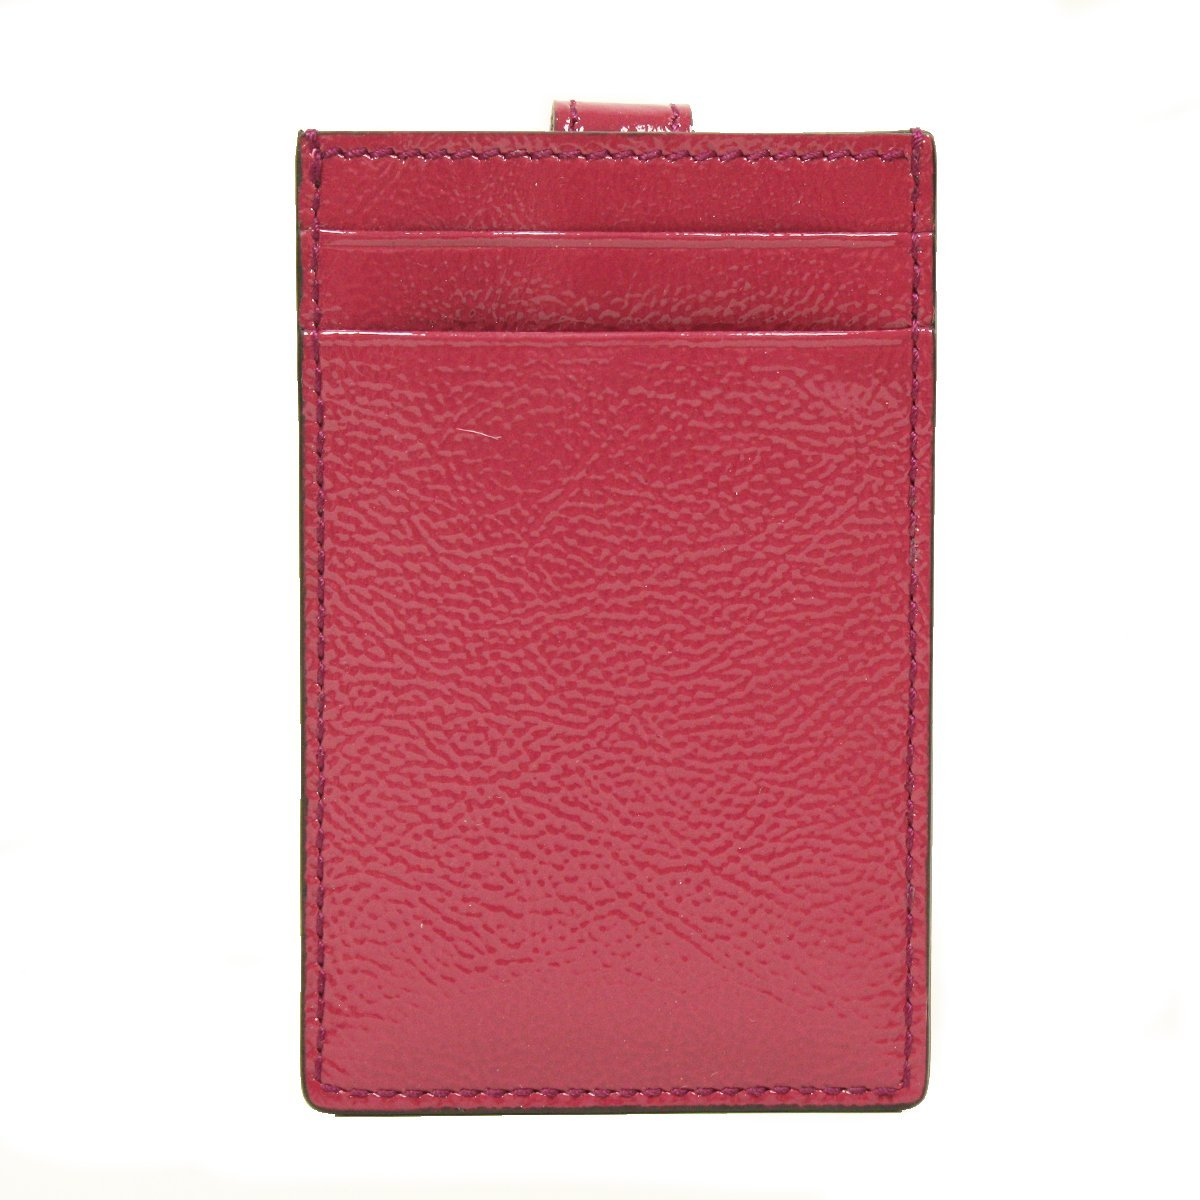 4d24bad81d1c0a Gucci Soho Magenta Pink Patent Leather Card Case 338331: Amazon.ca: Shoes &  Handbags